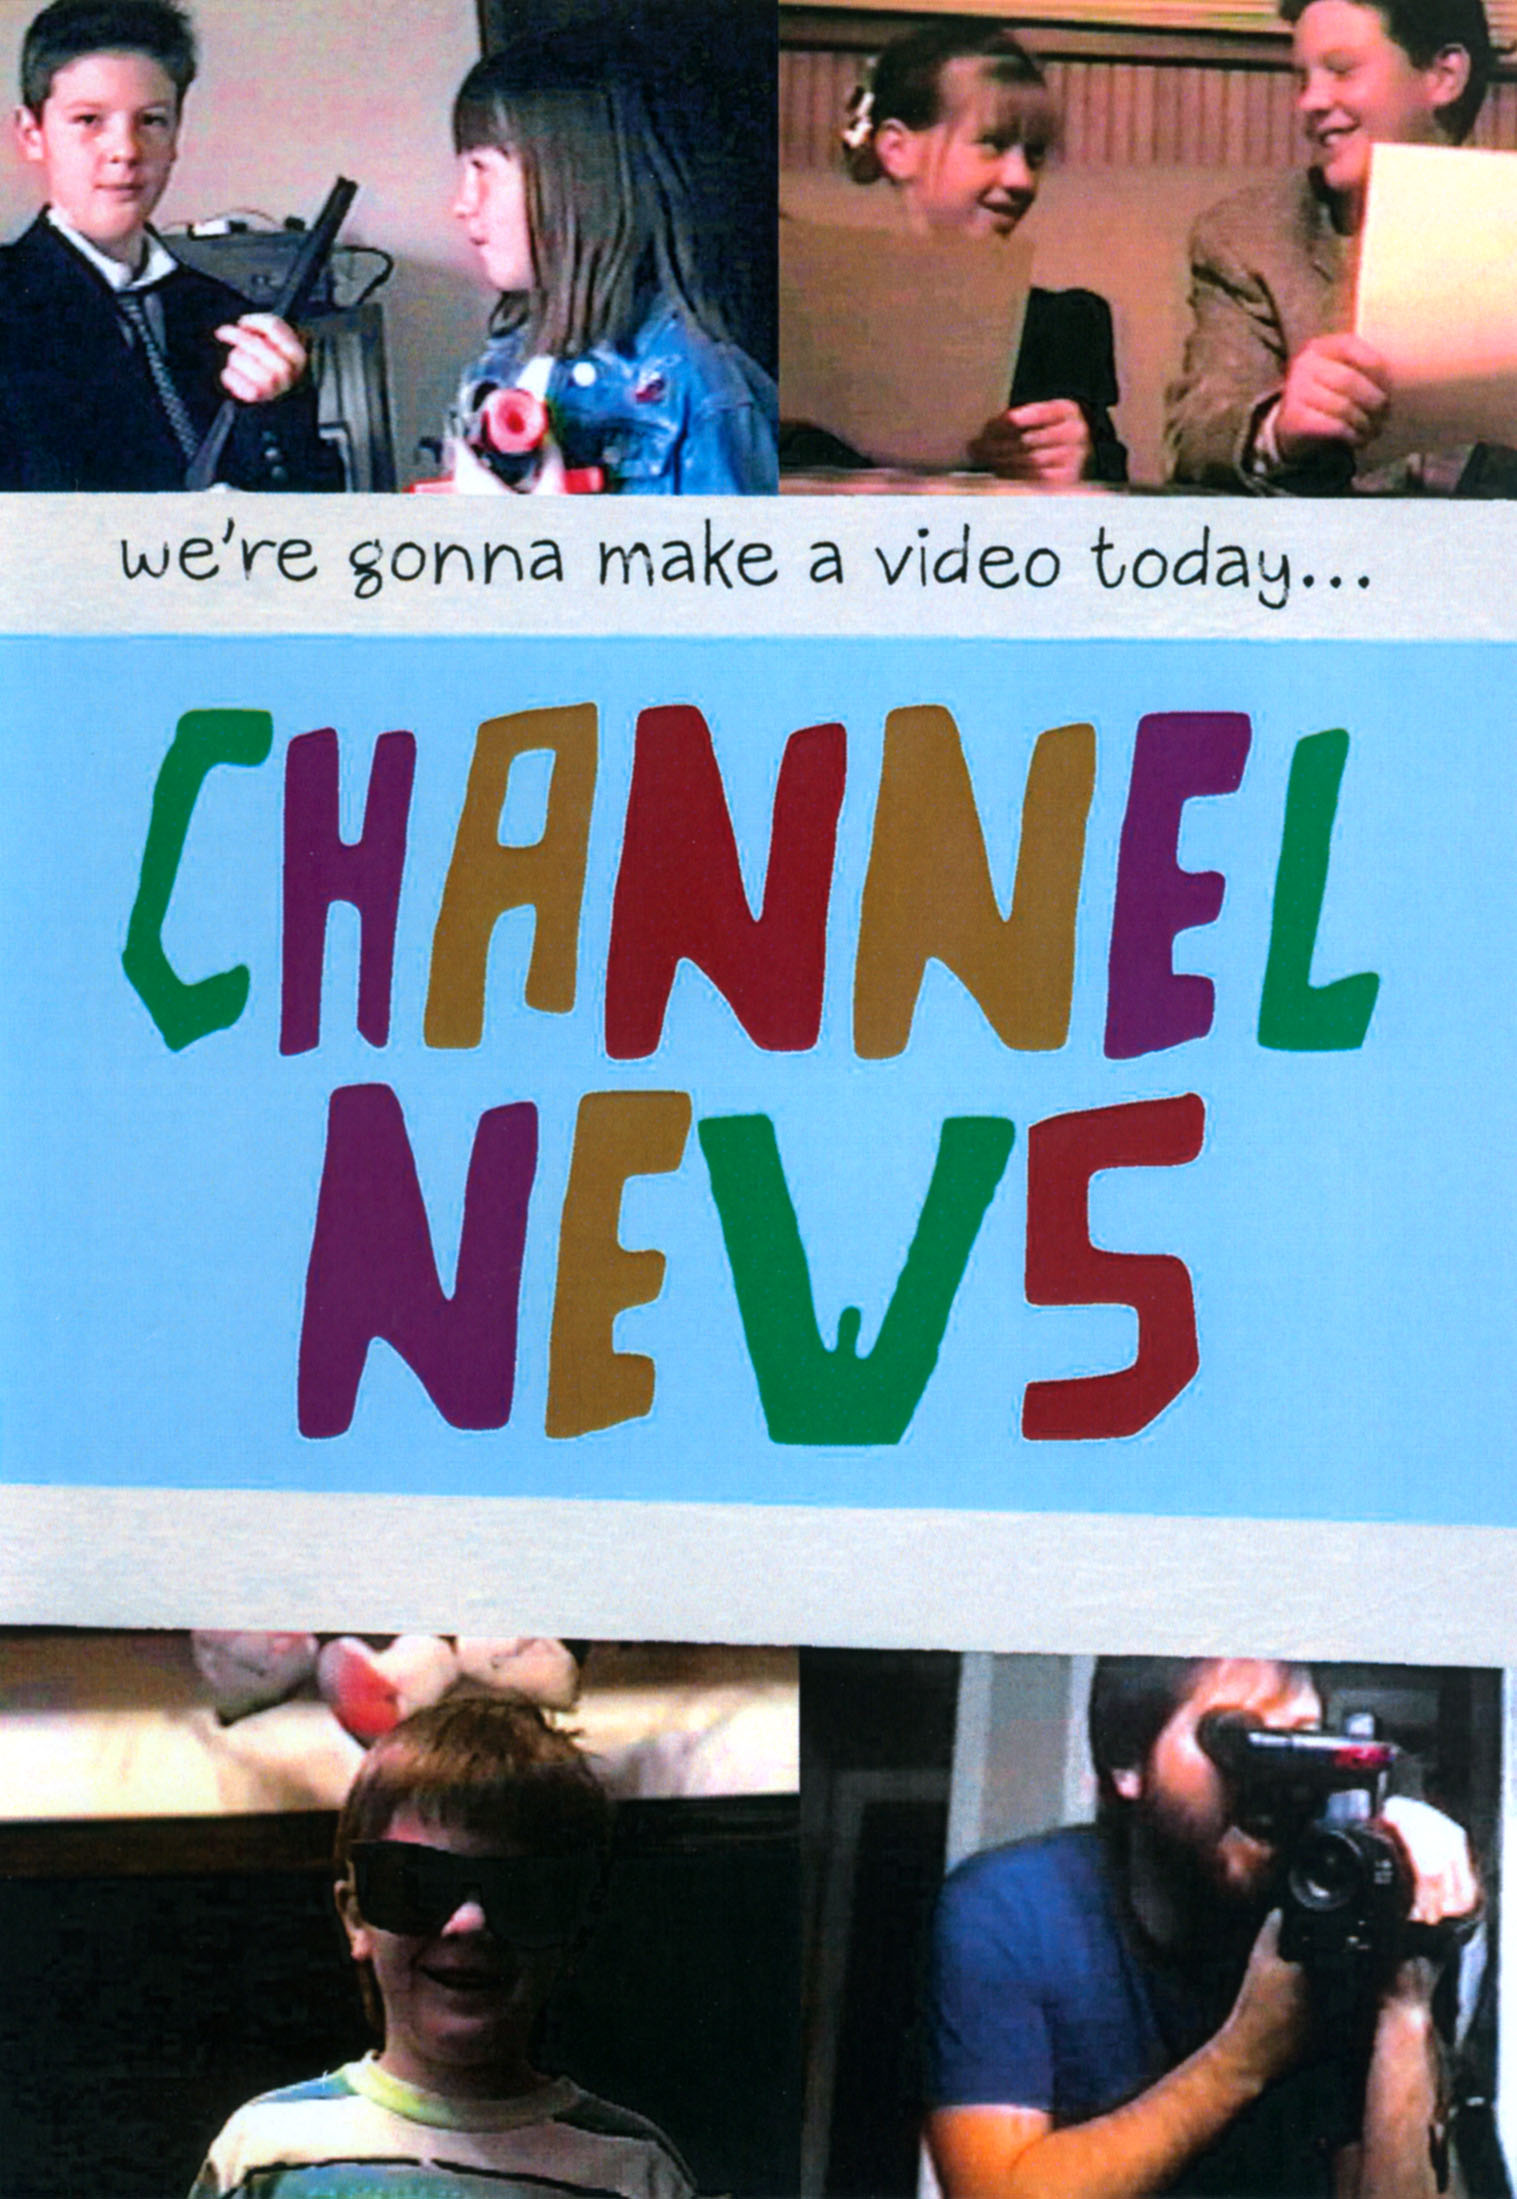 Channel News